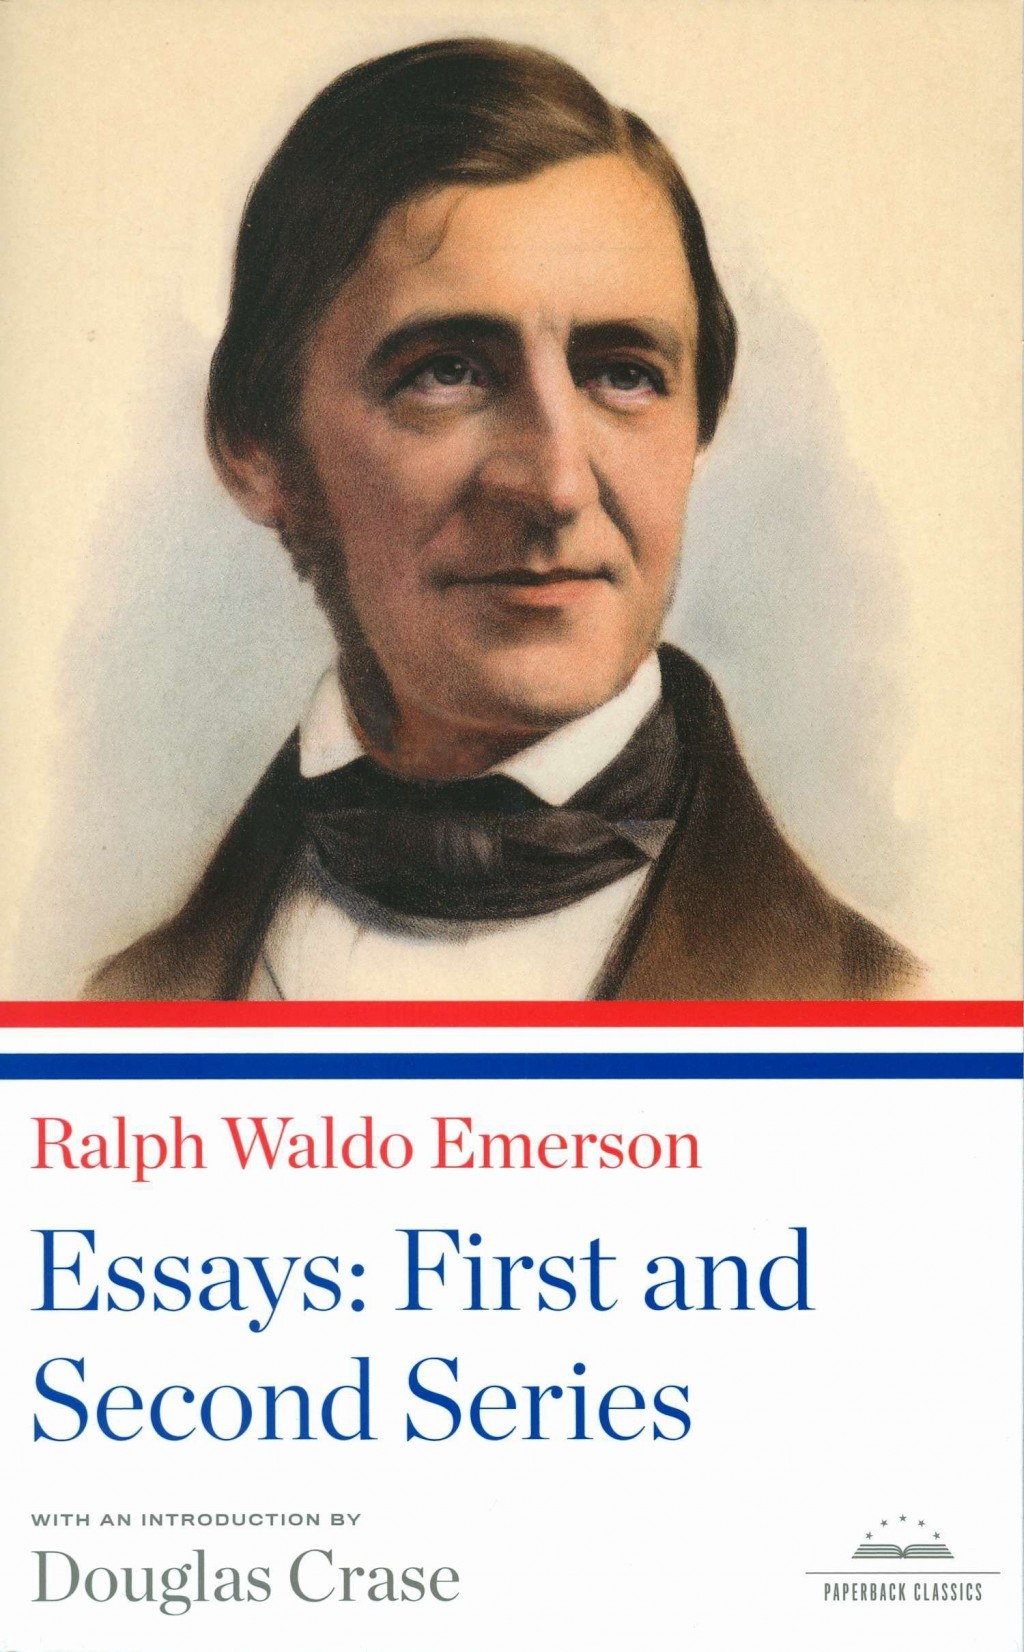 005 81bbtjzup6l Essay Example Emerson Dreaded Essays Ralph Pdf First Series Summary Waldo Nature Large